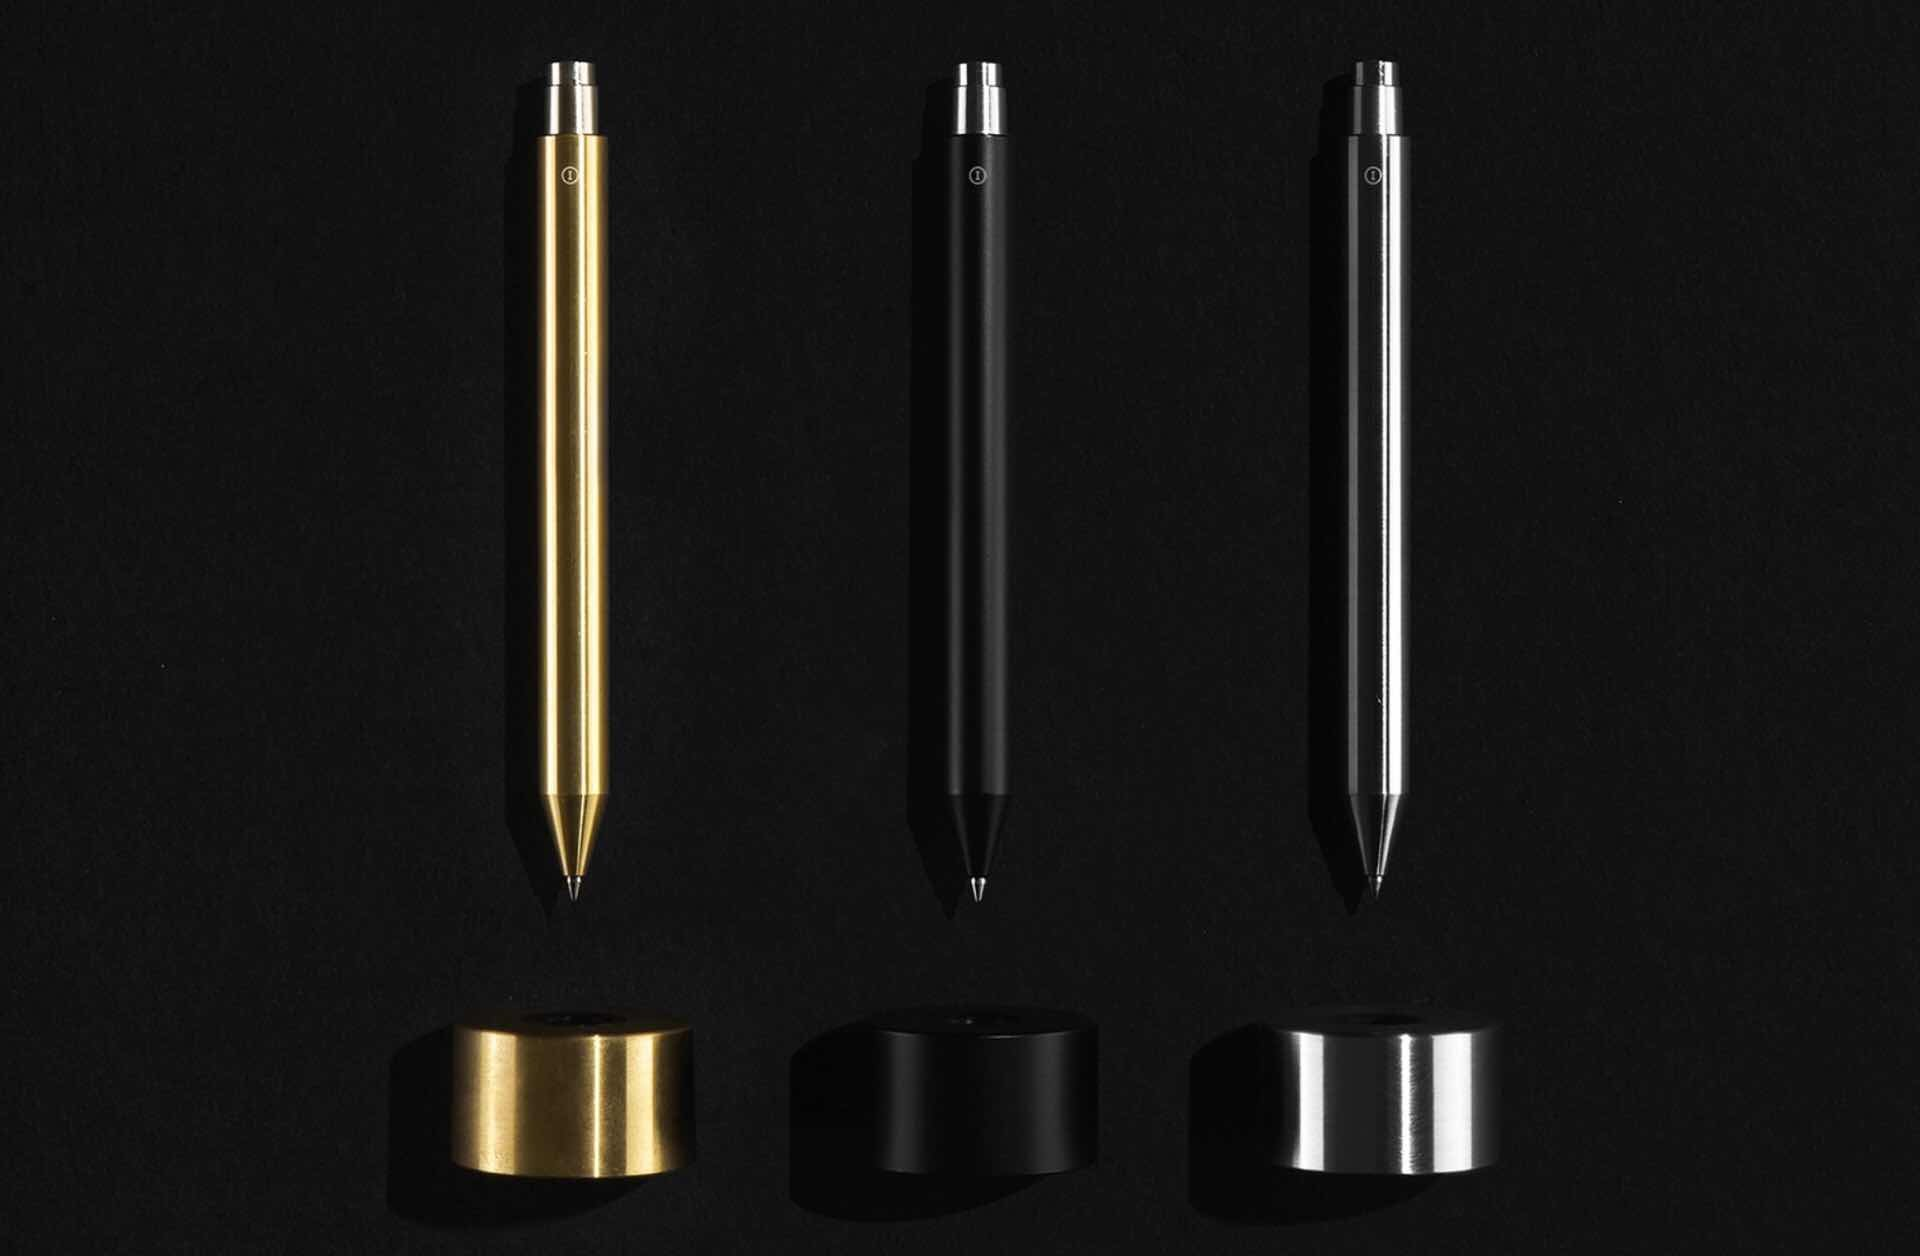 Inventery's Mechanical Pen + Stand collection. ($50$90 per pen depending on size, and $50 per stand  all available in three colors)